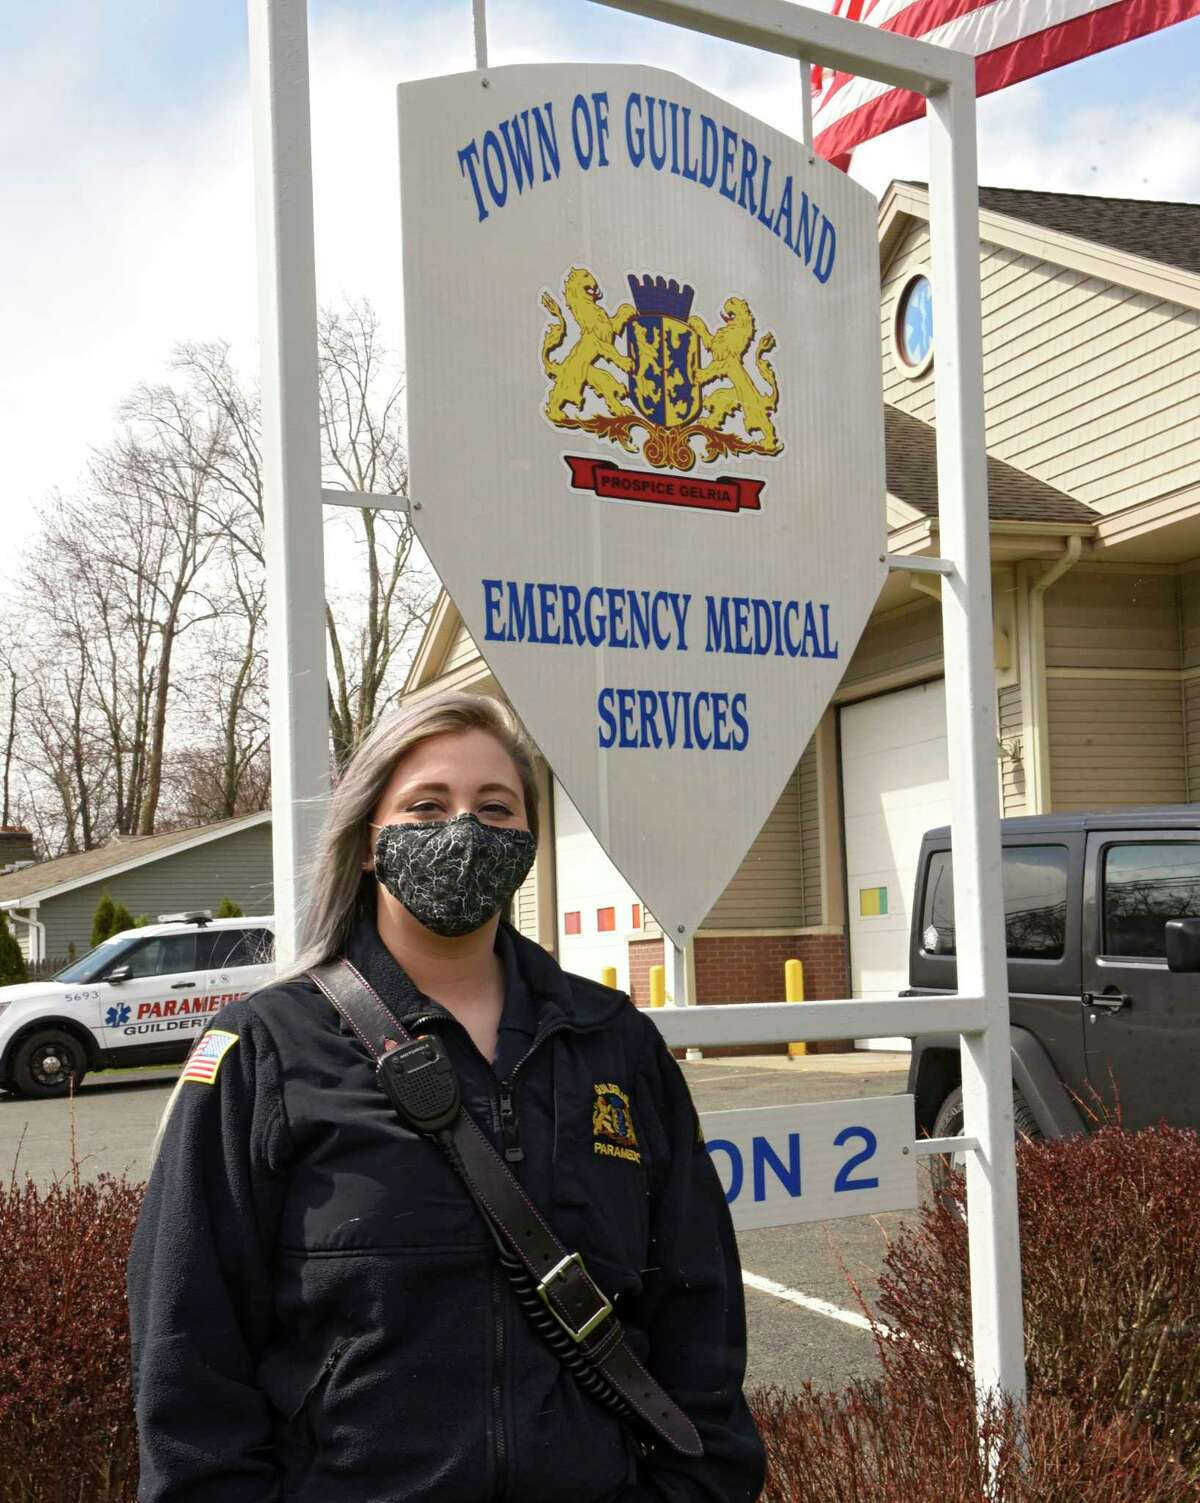 Guilderland emergency medical technician Caitlin D'Allesandro stands outside the emergency medical services garage on Wednesday, April 22, 2020 in Schenectady, N.Y. (Lori Van Buren/Times Union)